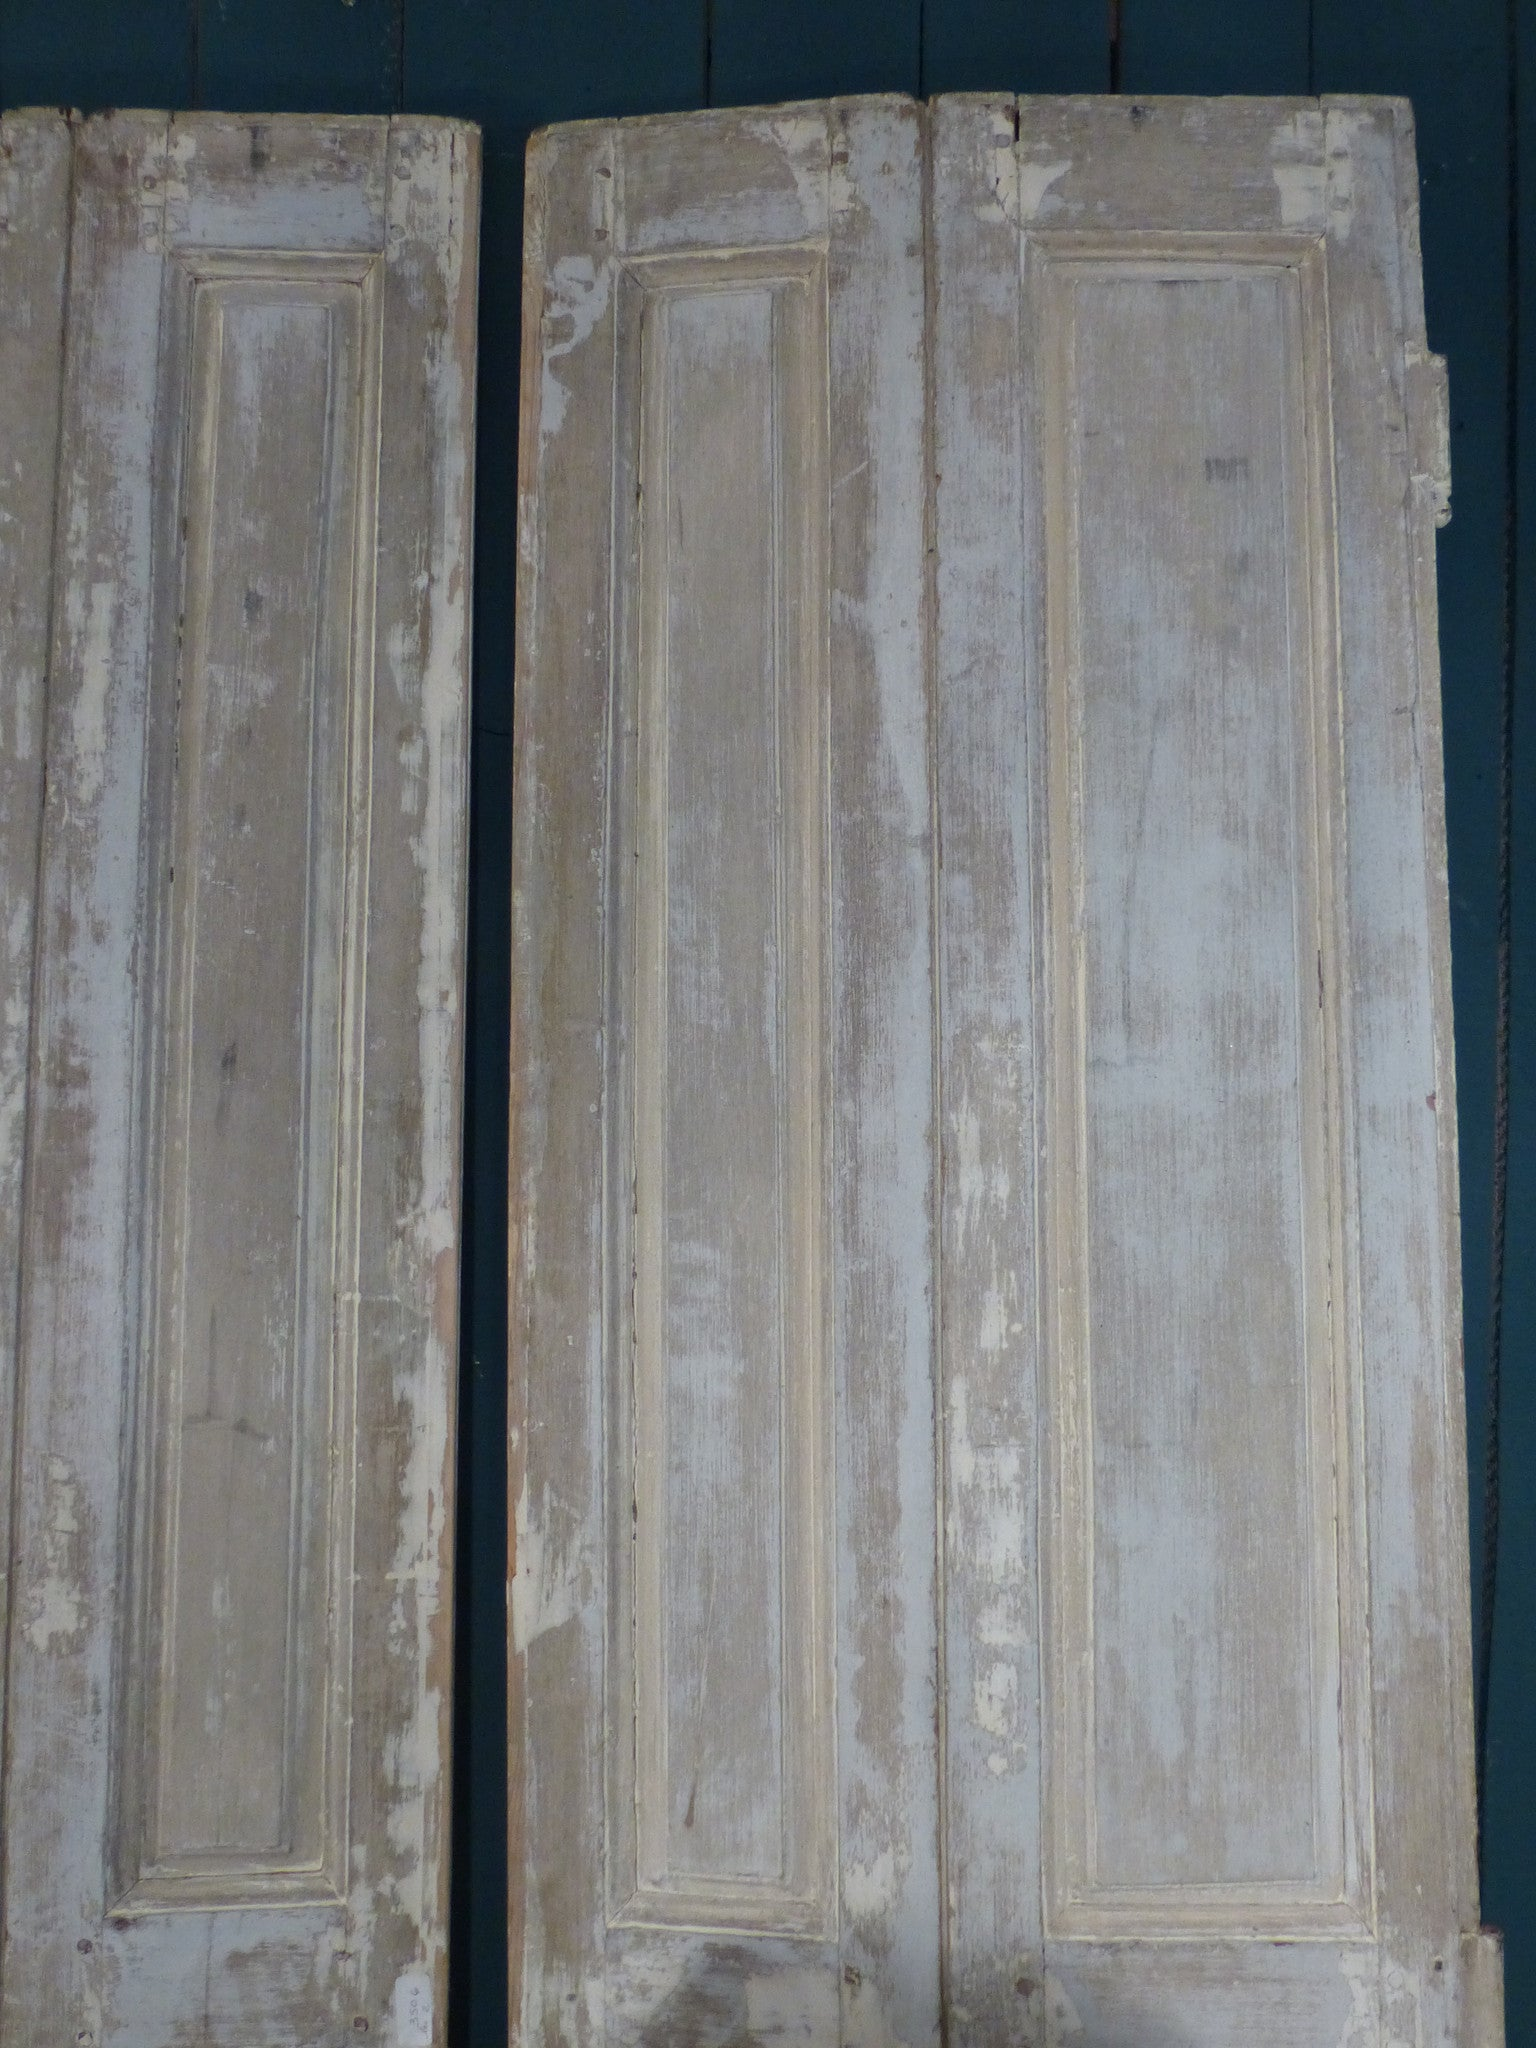 Pair of 19th century shutters with white patina bedhead